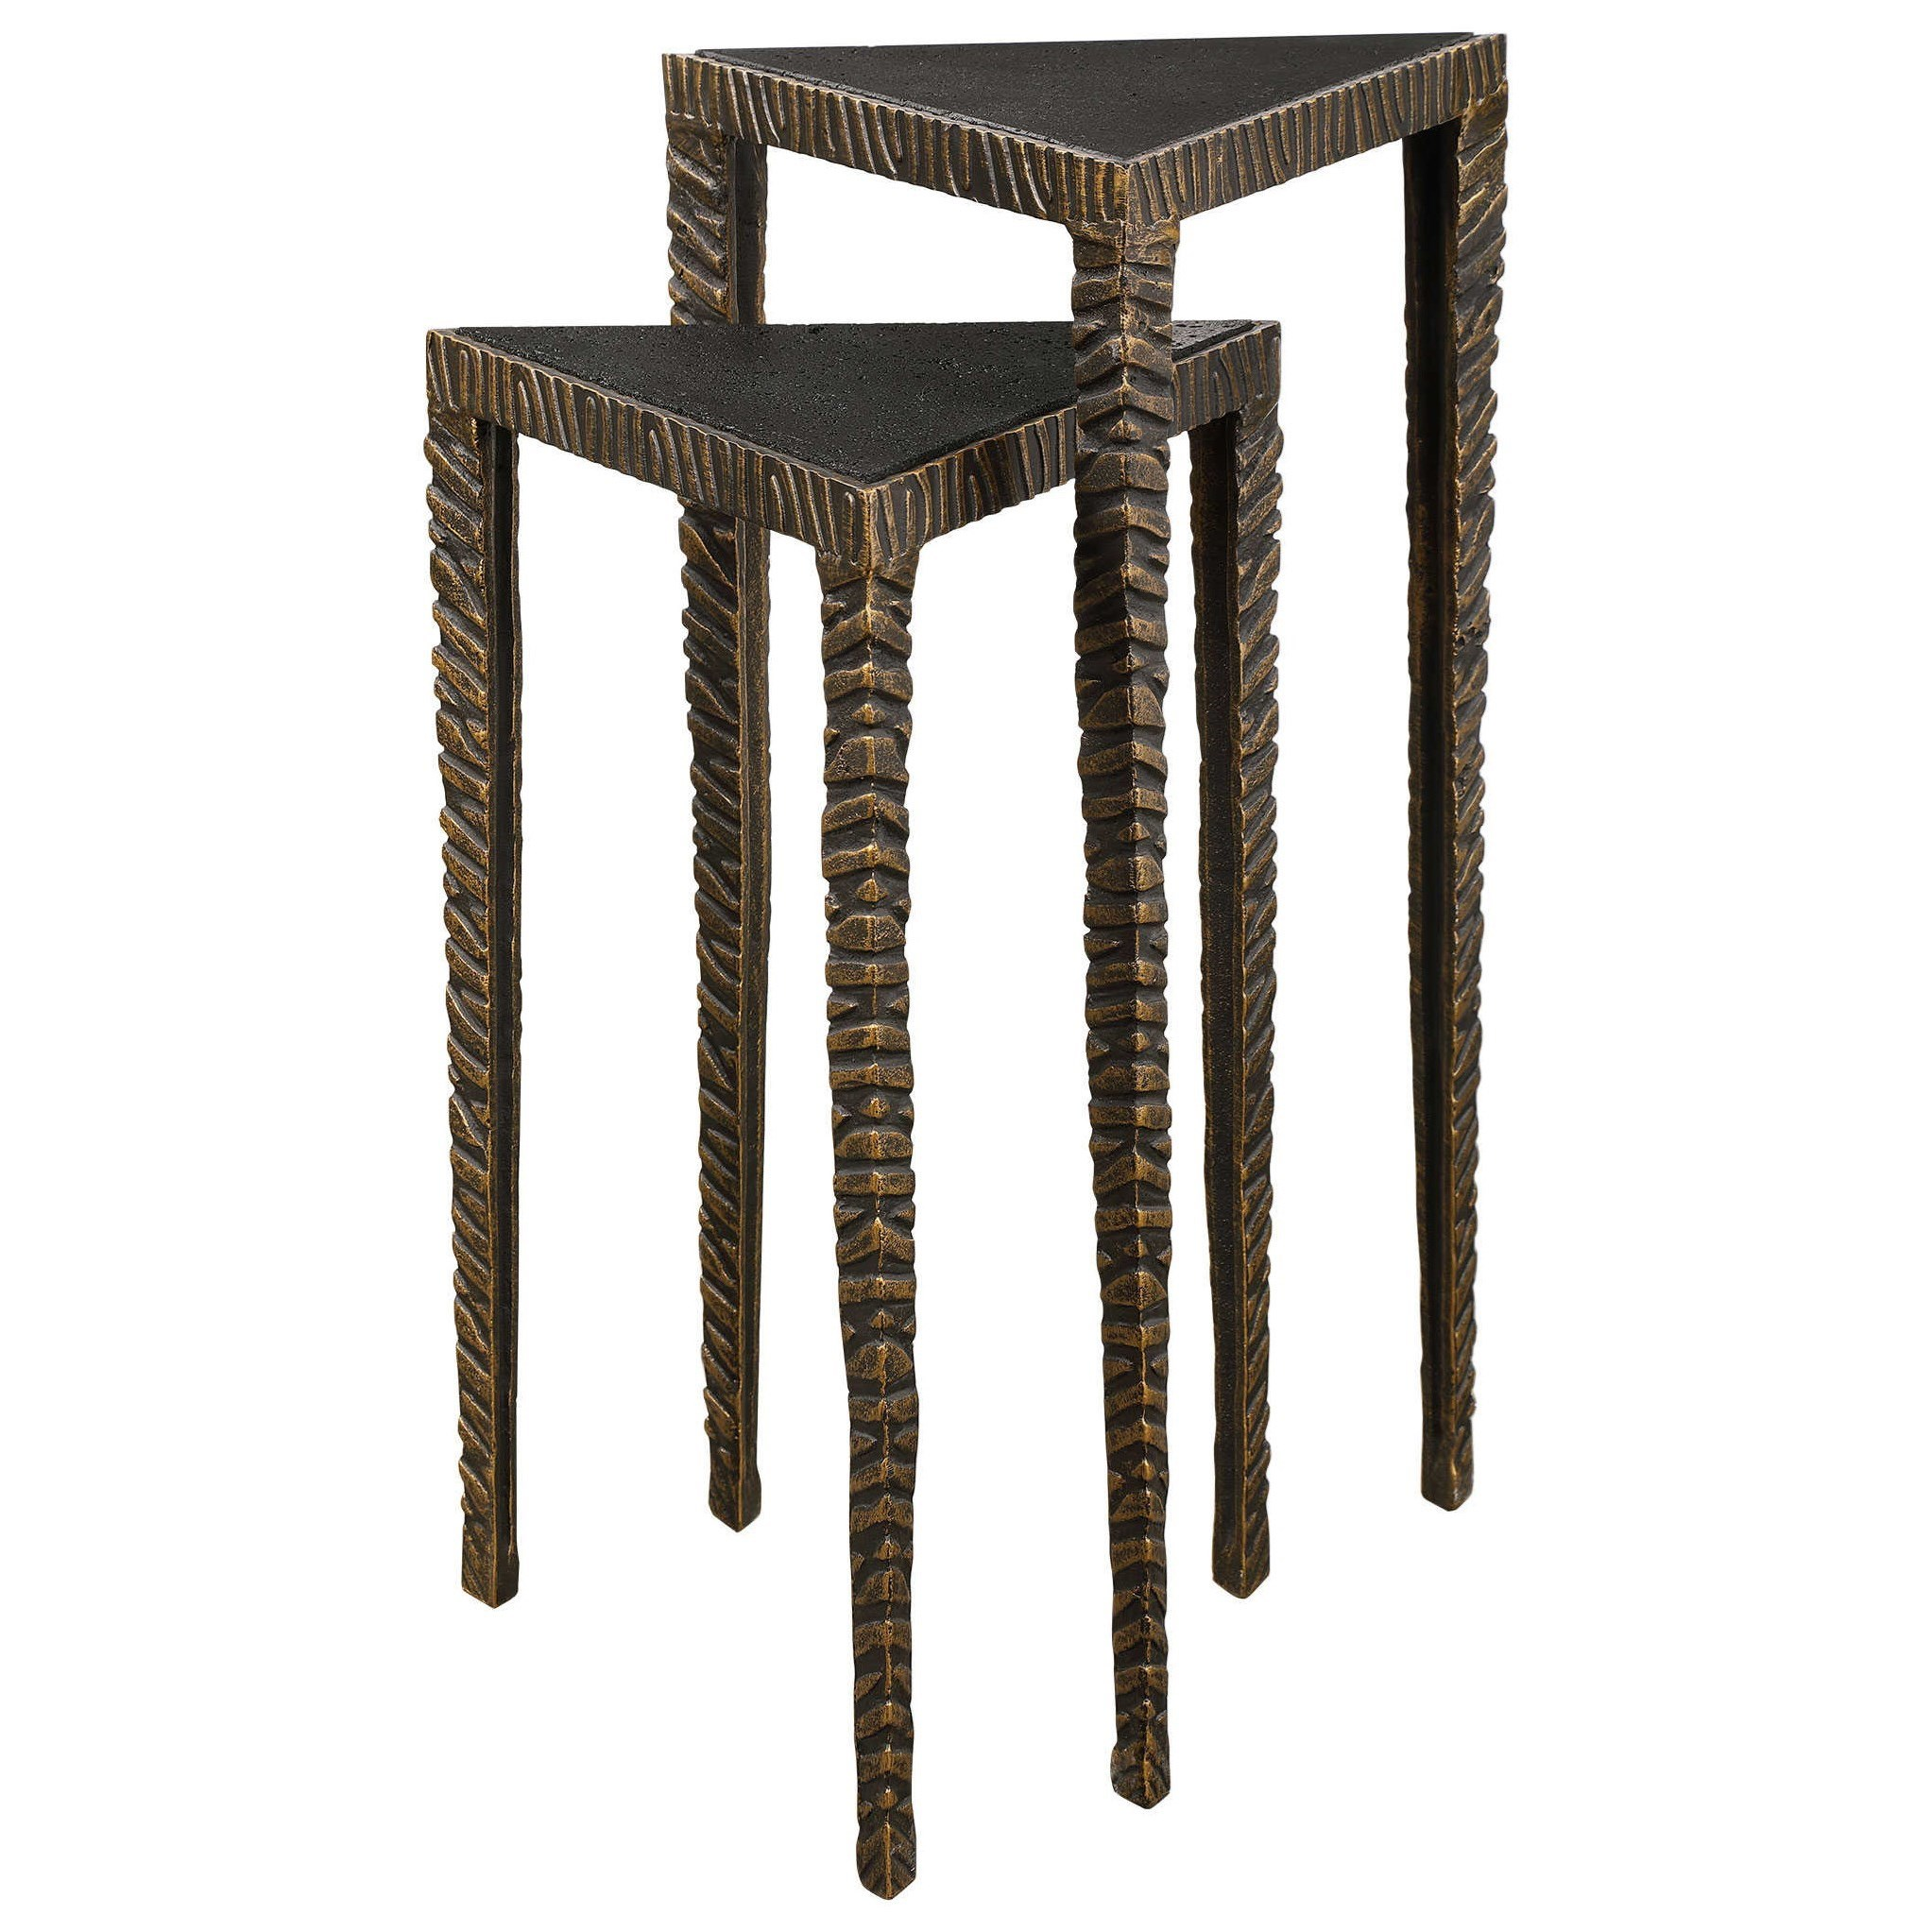 Accent Furniture - Occasional Tables Triangular Accent Tables, S/2 by Uttermost at Reid's Furniture